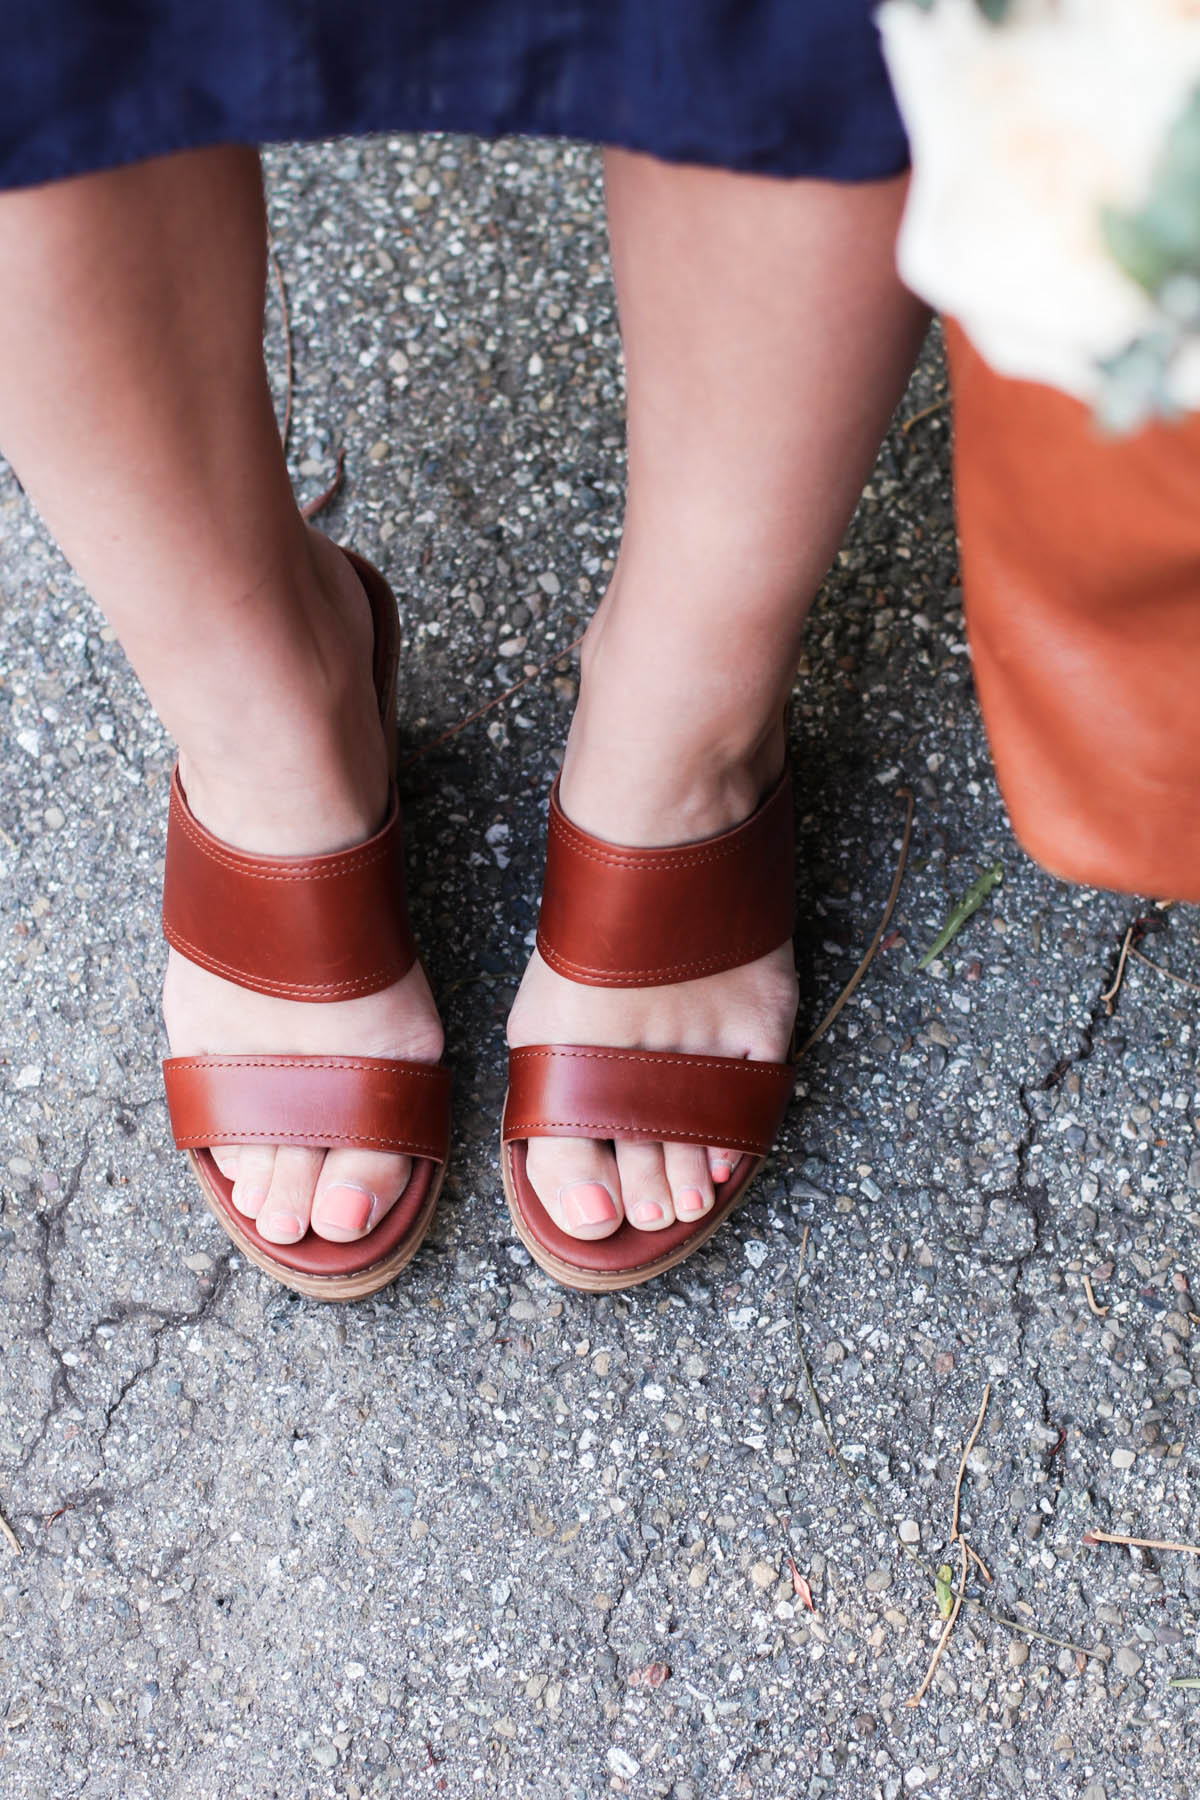 spring outfit leather sandals by Timberland from Zappos